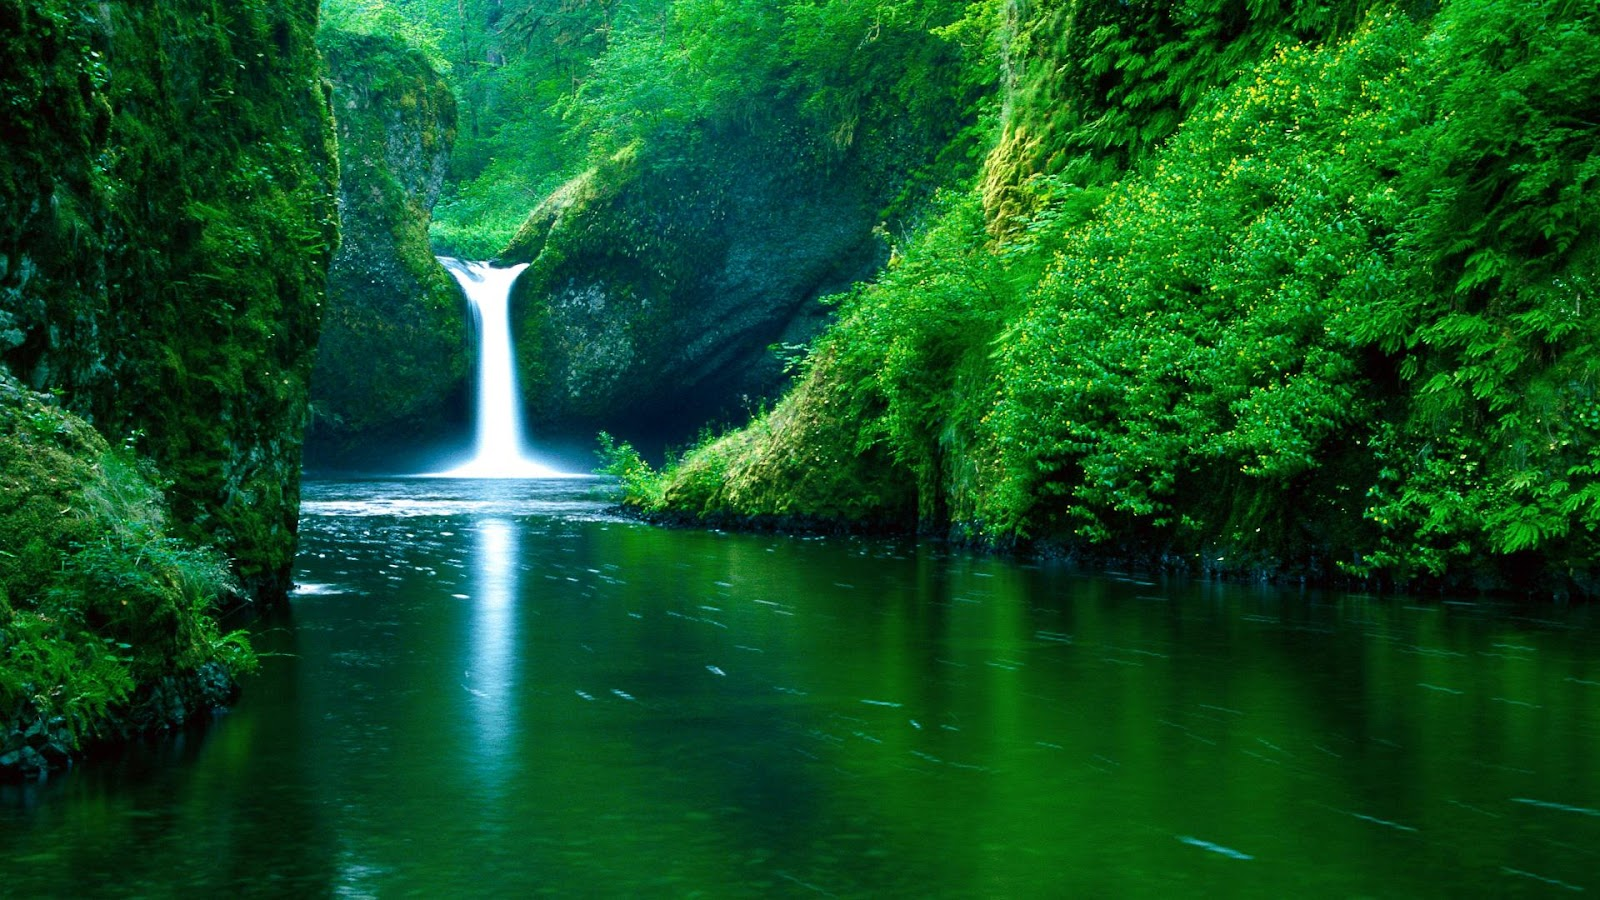 Wallpaper proslut full hd waterfall nature wallpapers - Nature wallpaper of waterfall ...